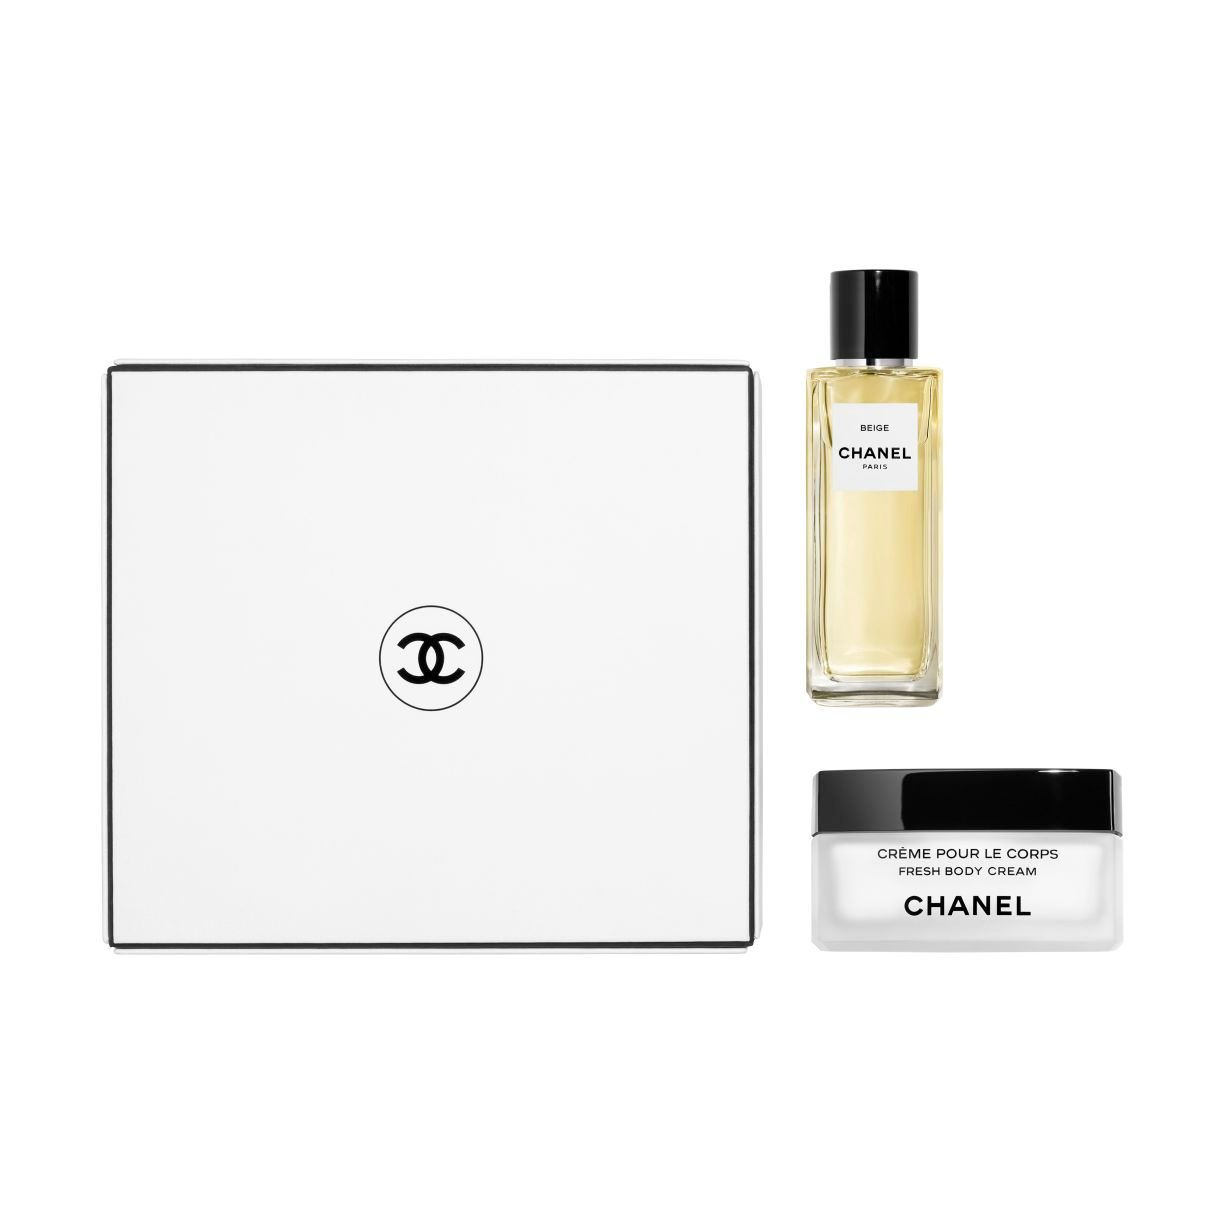 LES EXCLUSIFS DE CHANEL BEIGE EAU DE PARFUM 75 ML AND FRESH BODY CREAM COFFRET